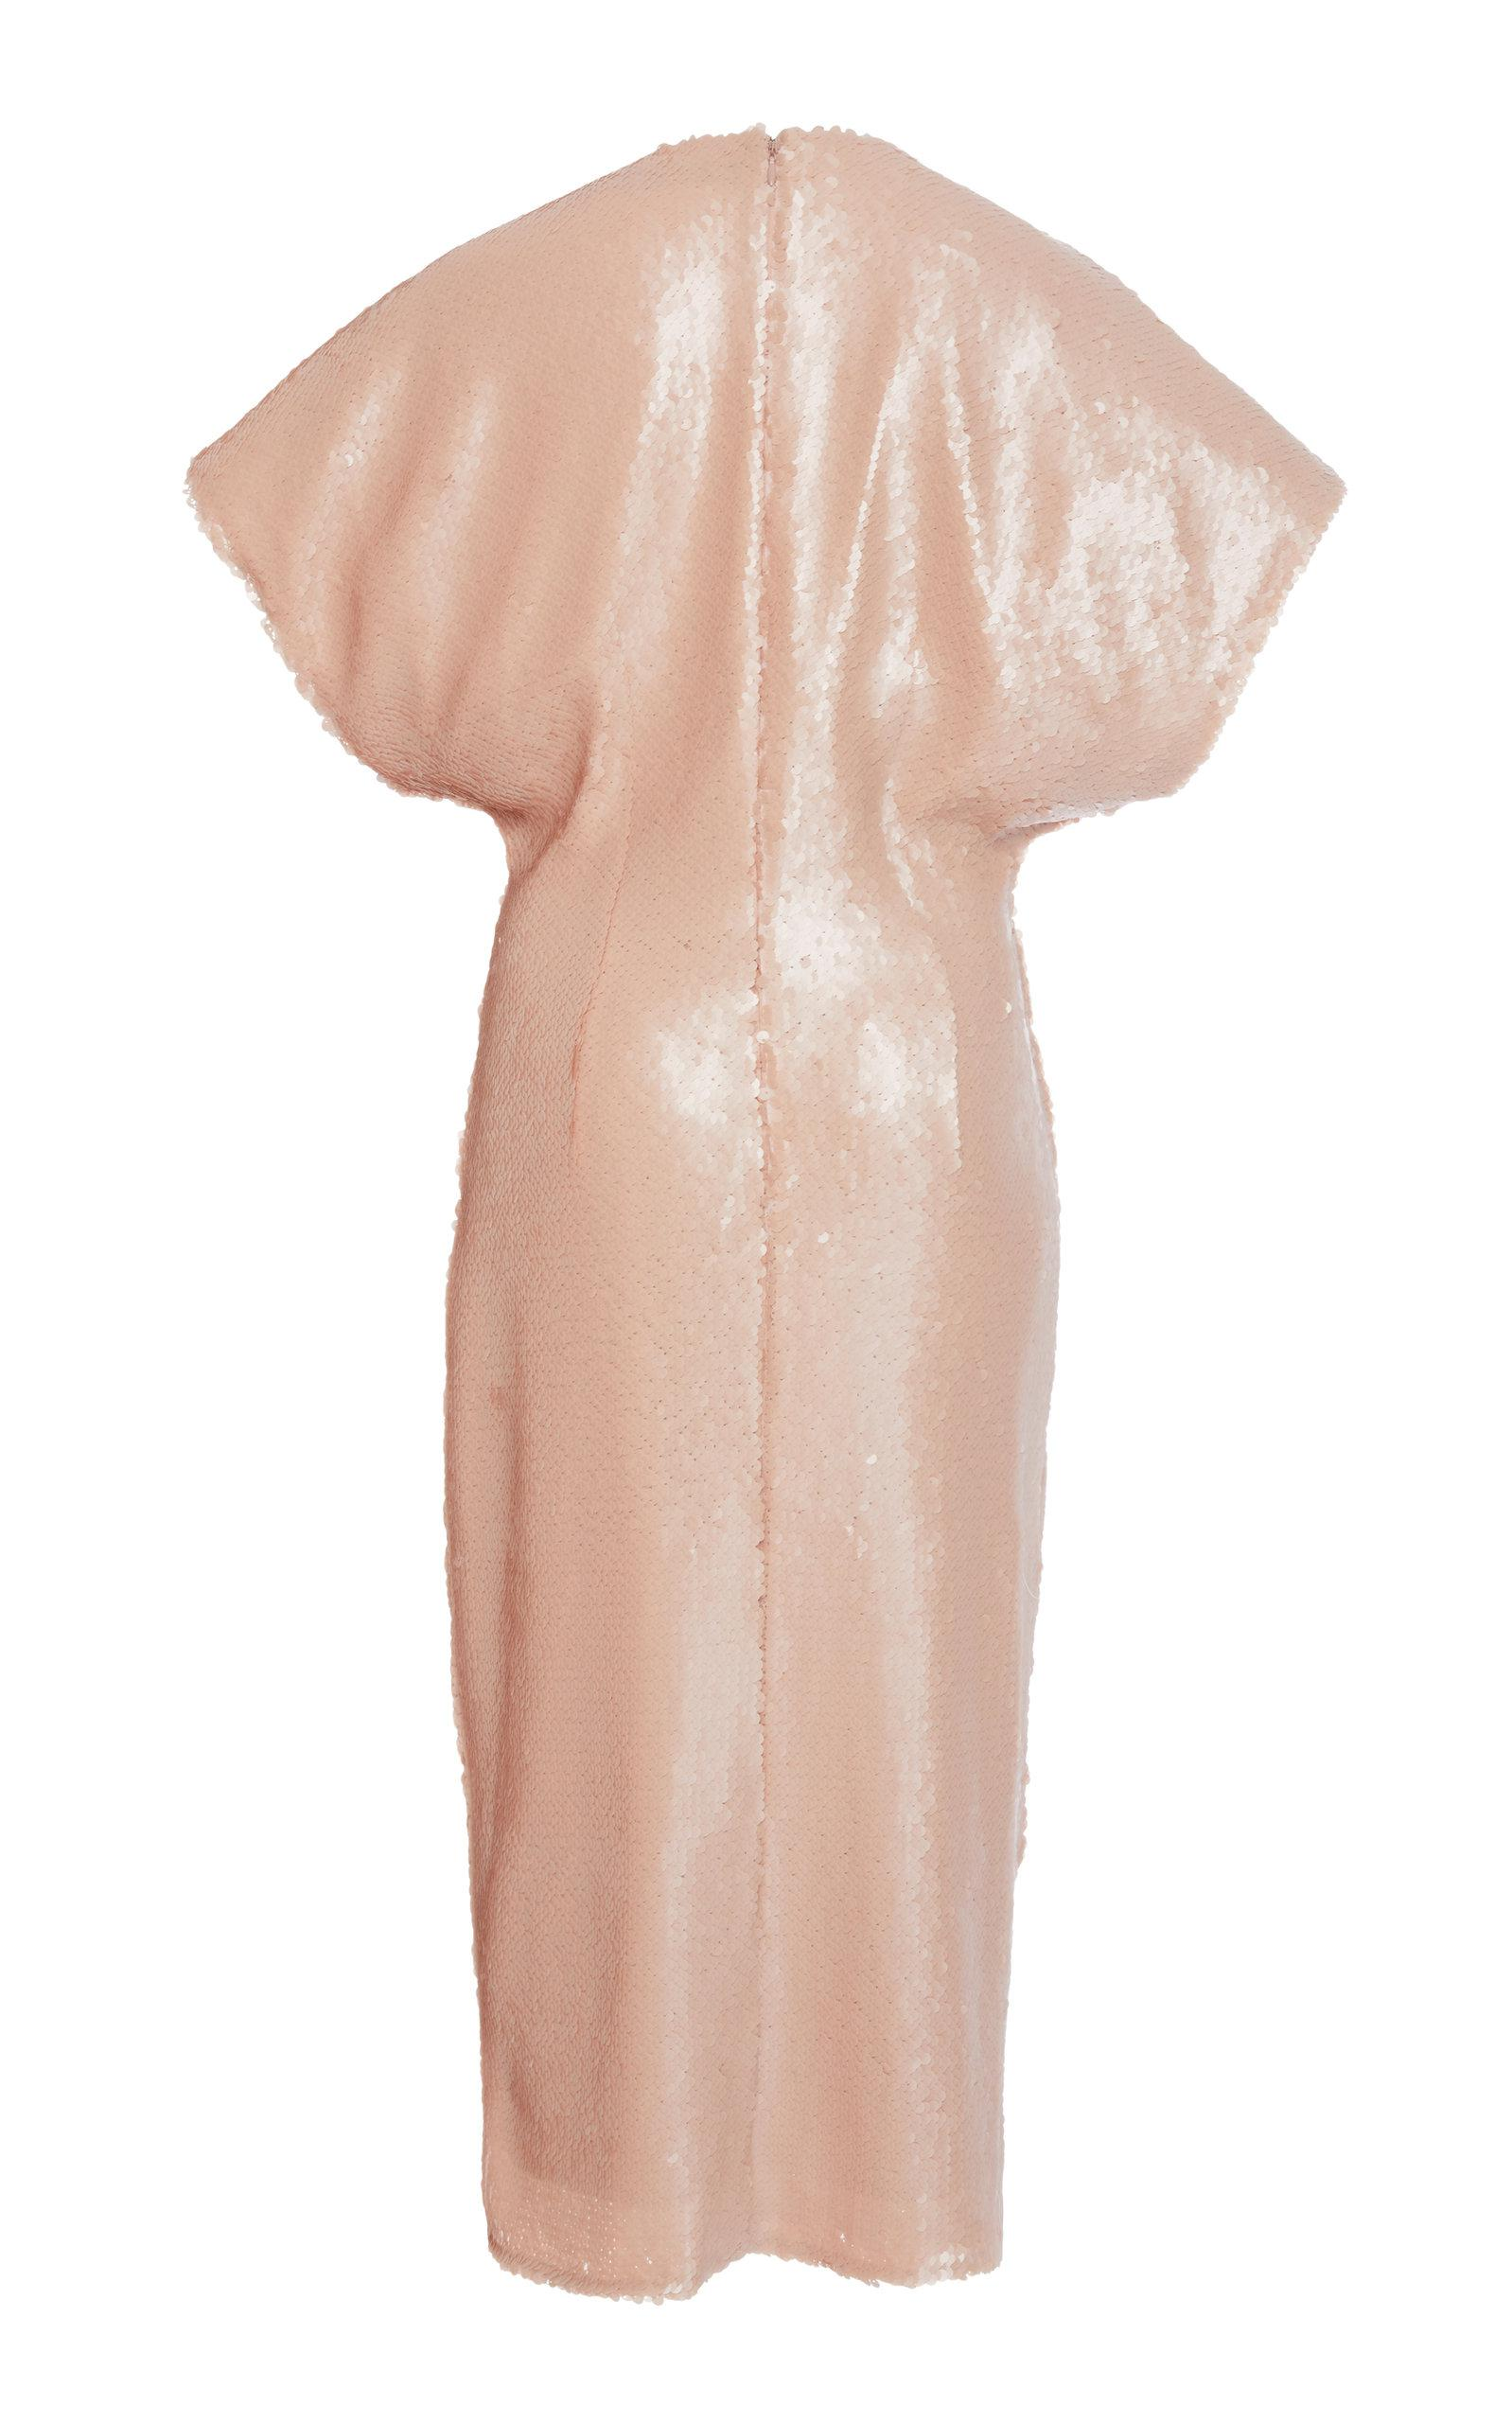 Stretch Sequin Cap Sleeve Dress Sally Lapointe iLL2YQUHW